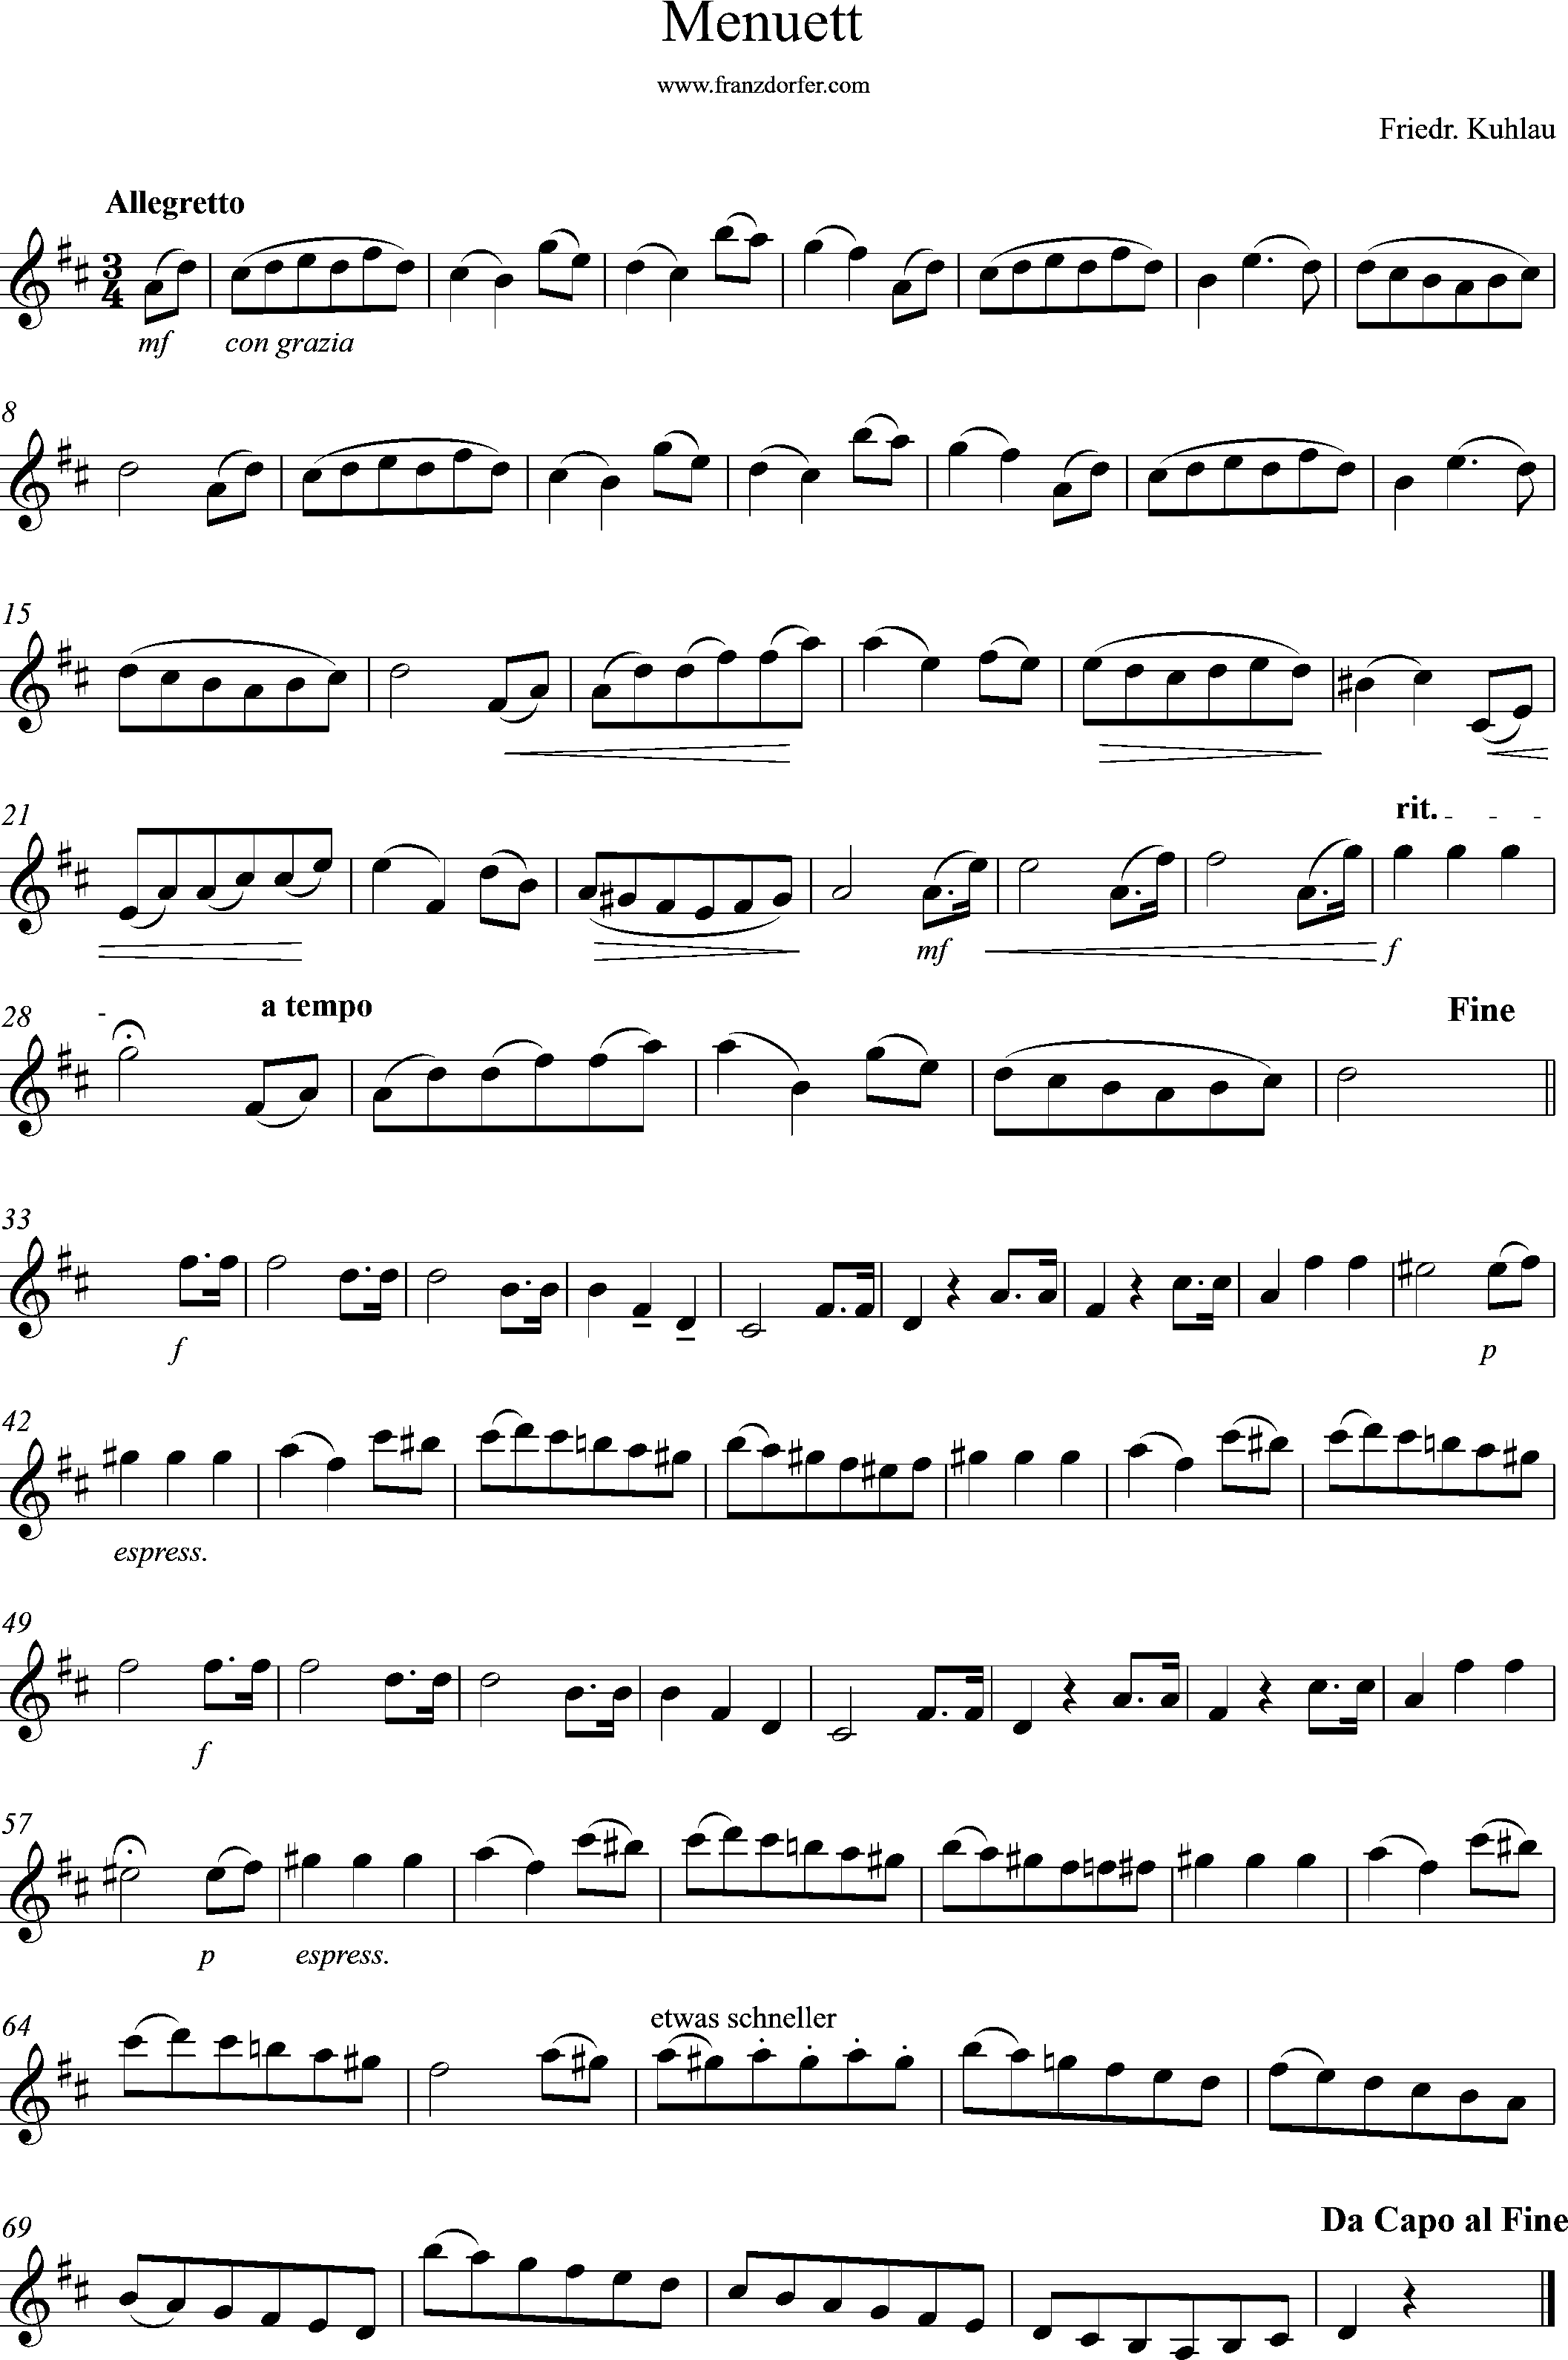 Solopart, Menuett- Kuhlau, D-Major